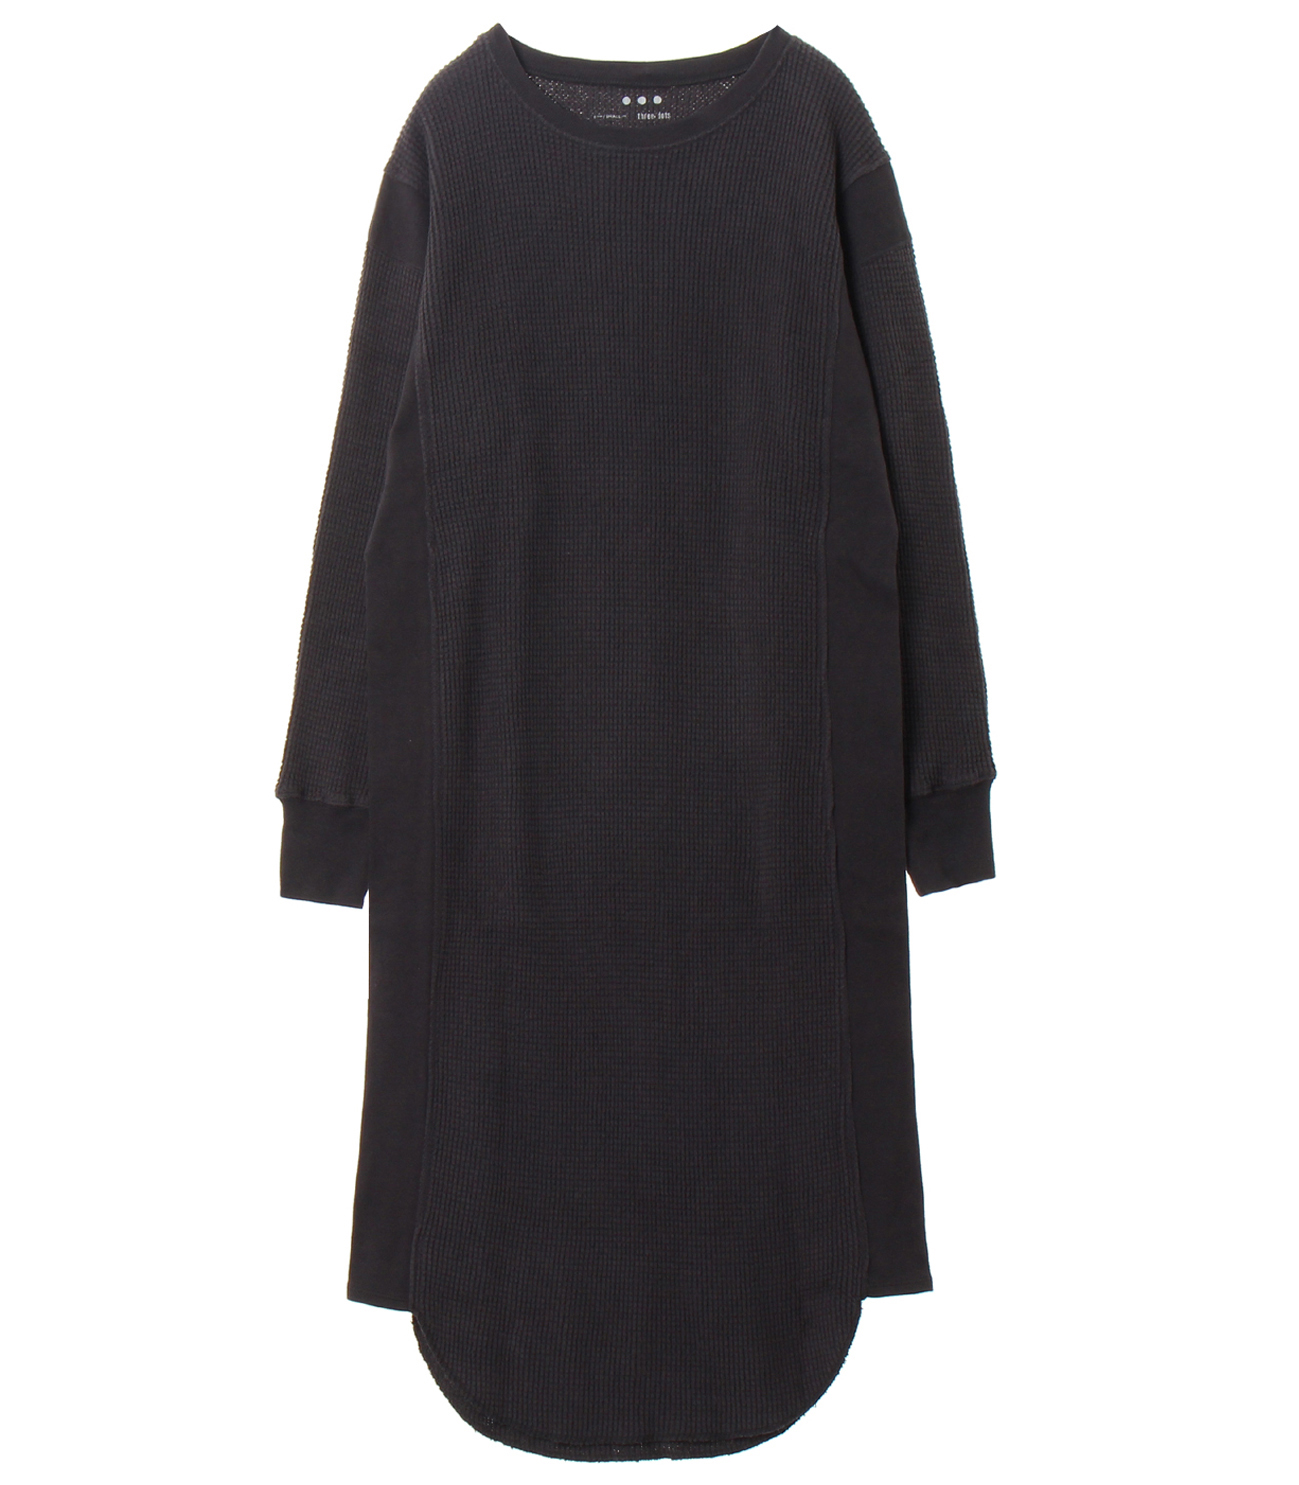 Double brushed waffle l/s dress 詳細画像 black 1